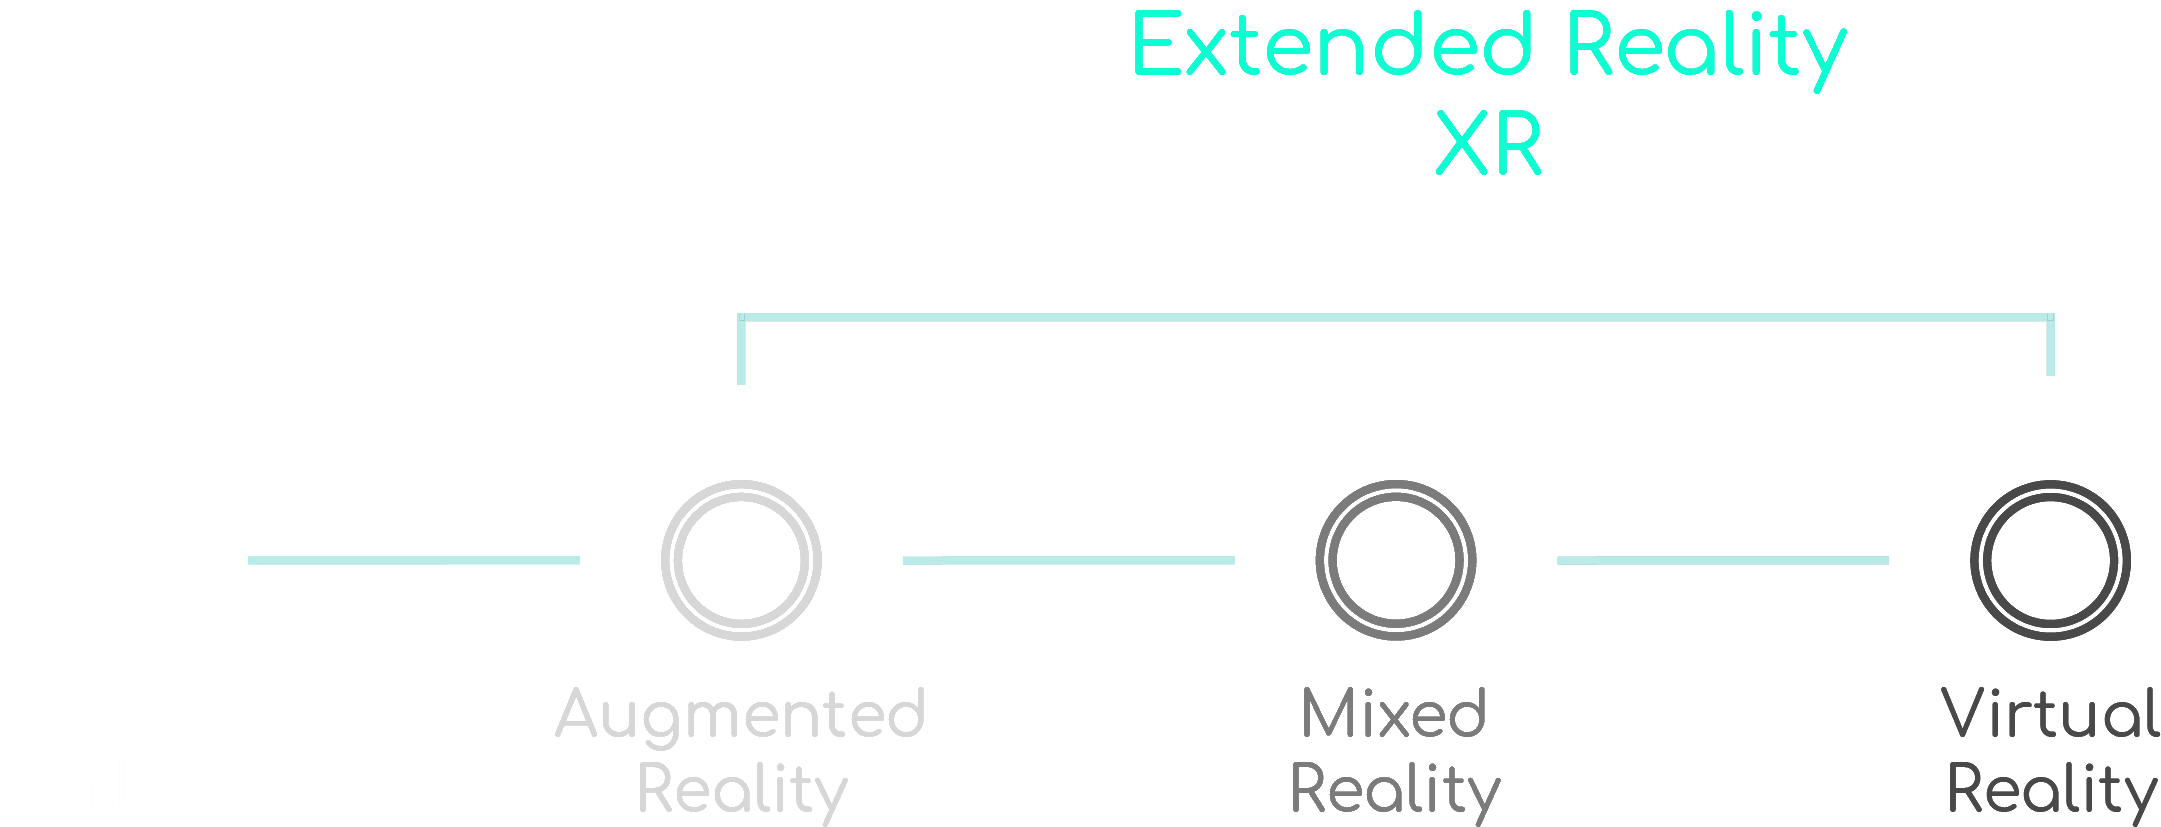 Extended reality spectrum visualisation